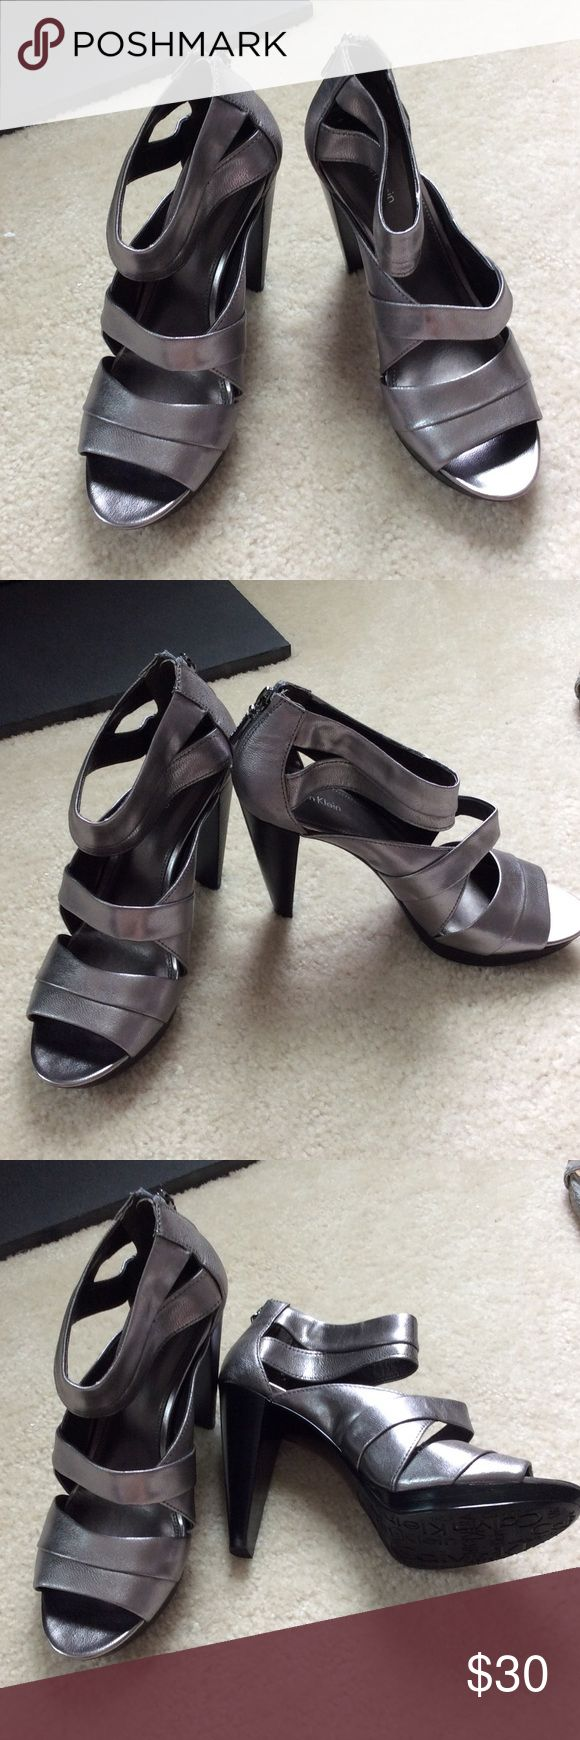 Calvin Klein Deliah 9 silver sandals zip up CK ladies 9 silver zip up sandal new without tags. No sign of wear.  Heal is 3.5 inches. Calvin Klein Shoes Sandals